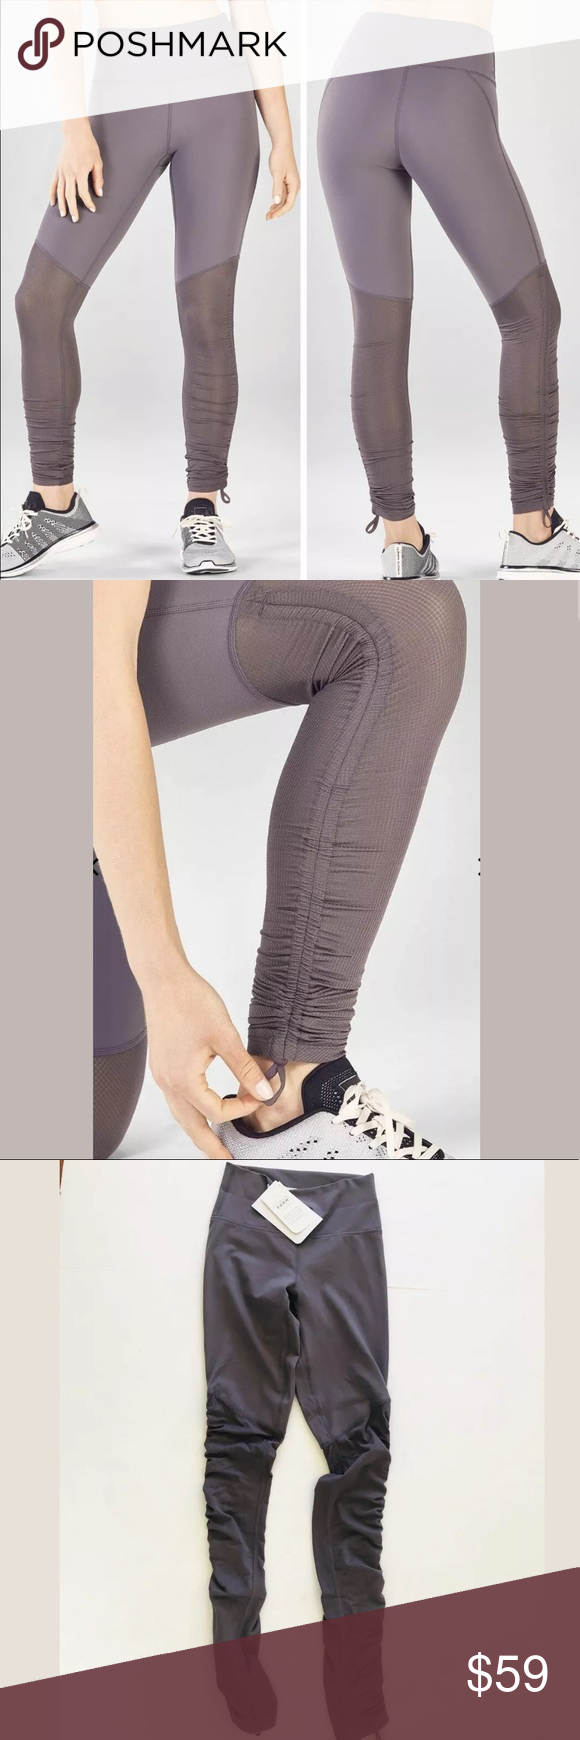 4293977444502 Fabletics Cashel Foldover PureLuxe Leggings xxs NWT Womens Fabletics Cashel  Foldover PureLuxe Leggings XXS. Condition is New with tags.